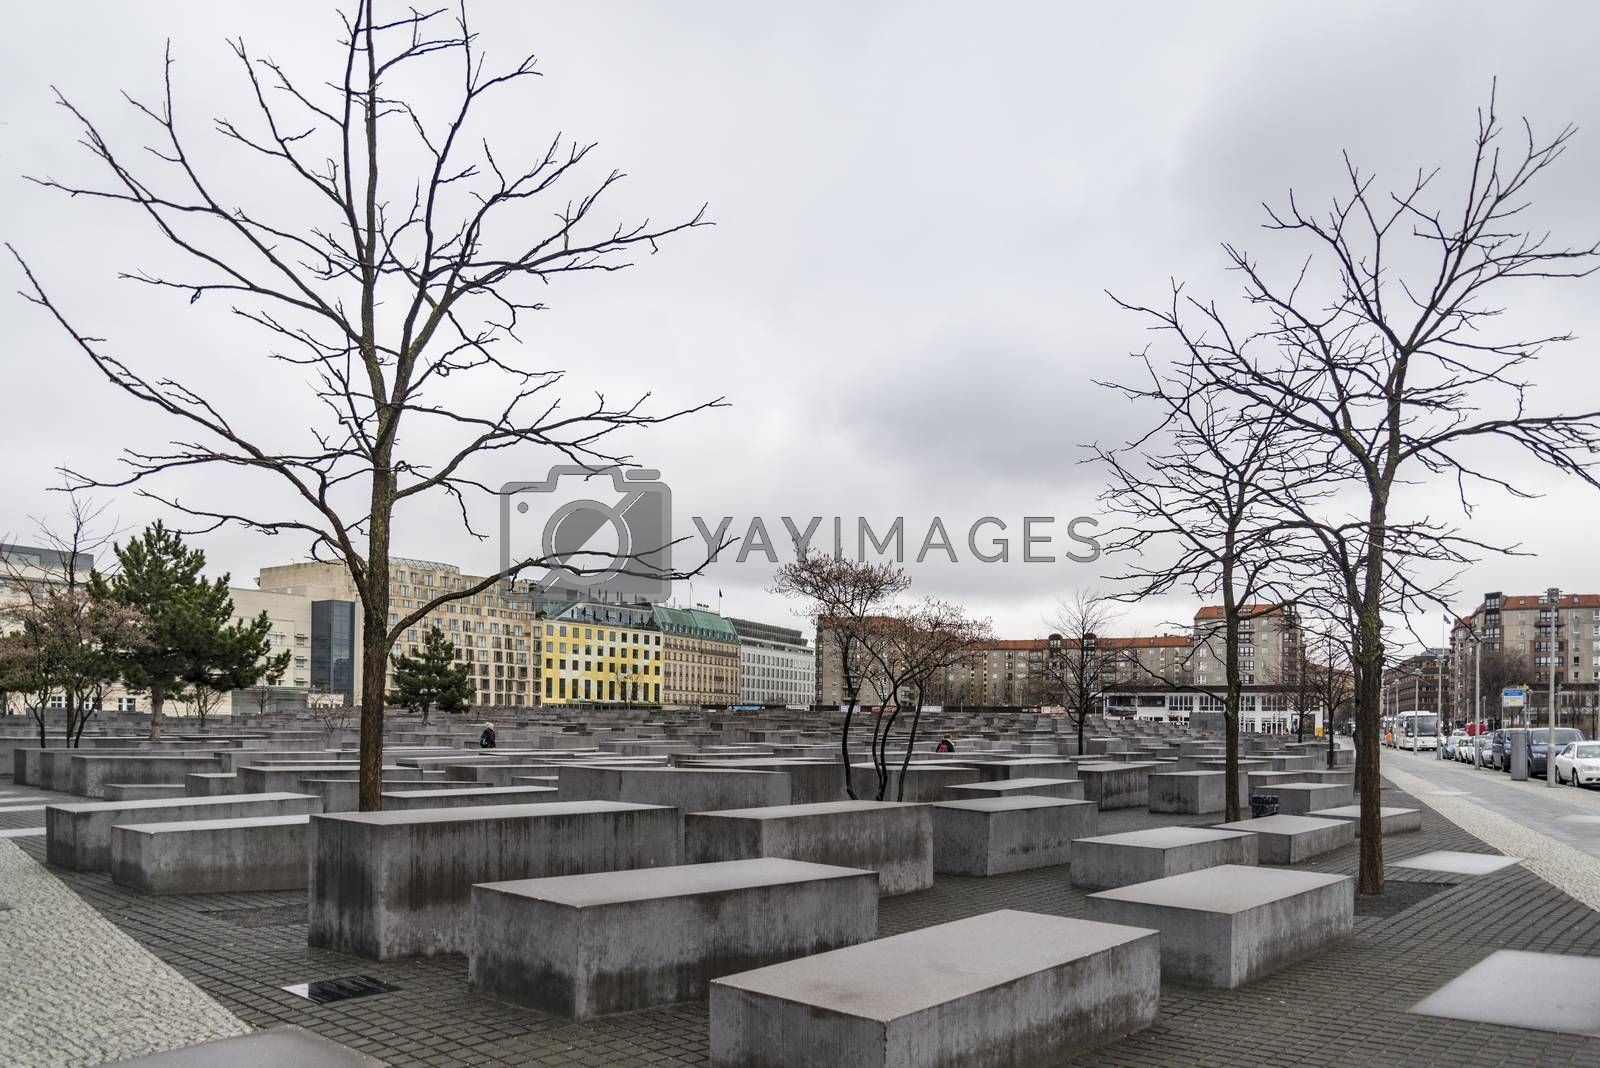 The Memorial to the Murdered Jews of Europe. Memorial to the Jewish victims of the Holocaust, built of concrete slabs, In Berlin Germany